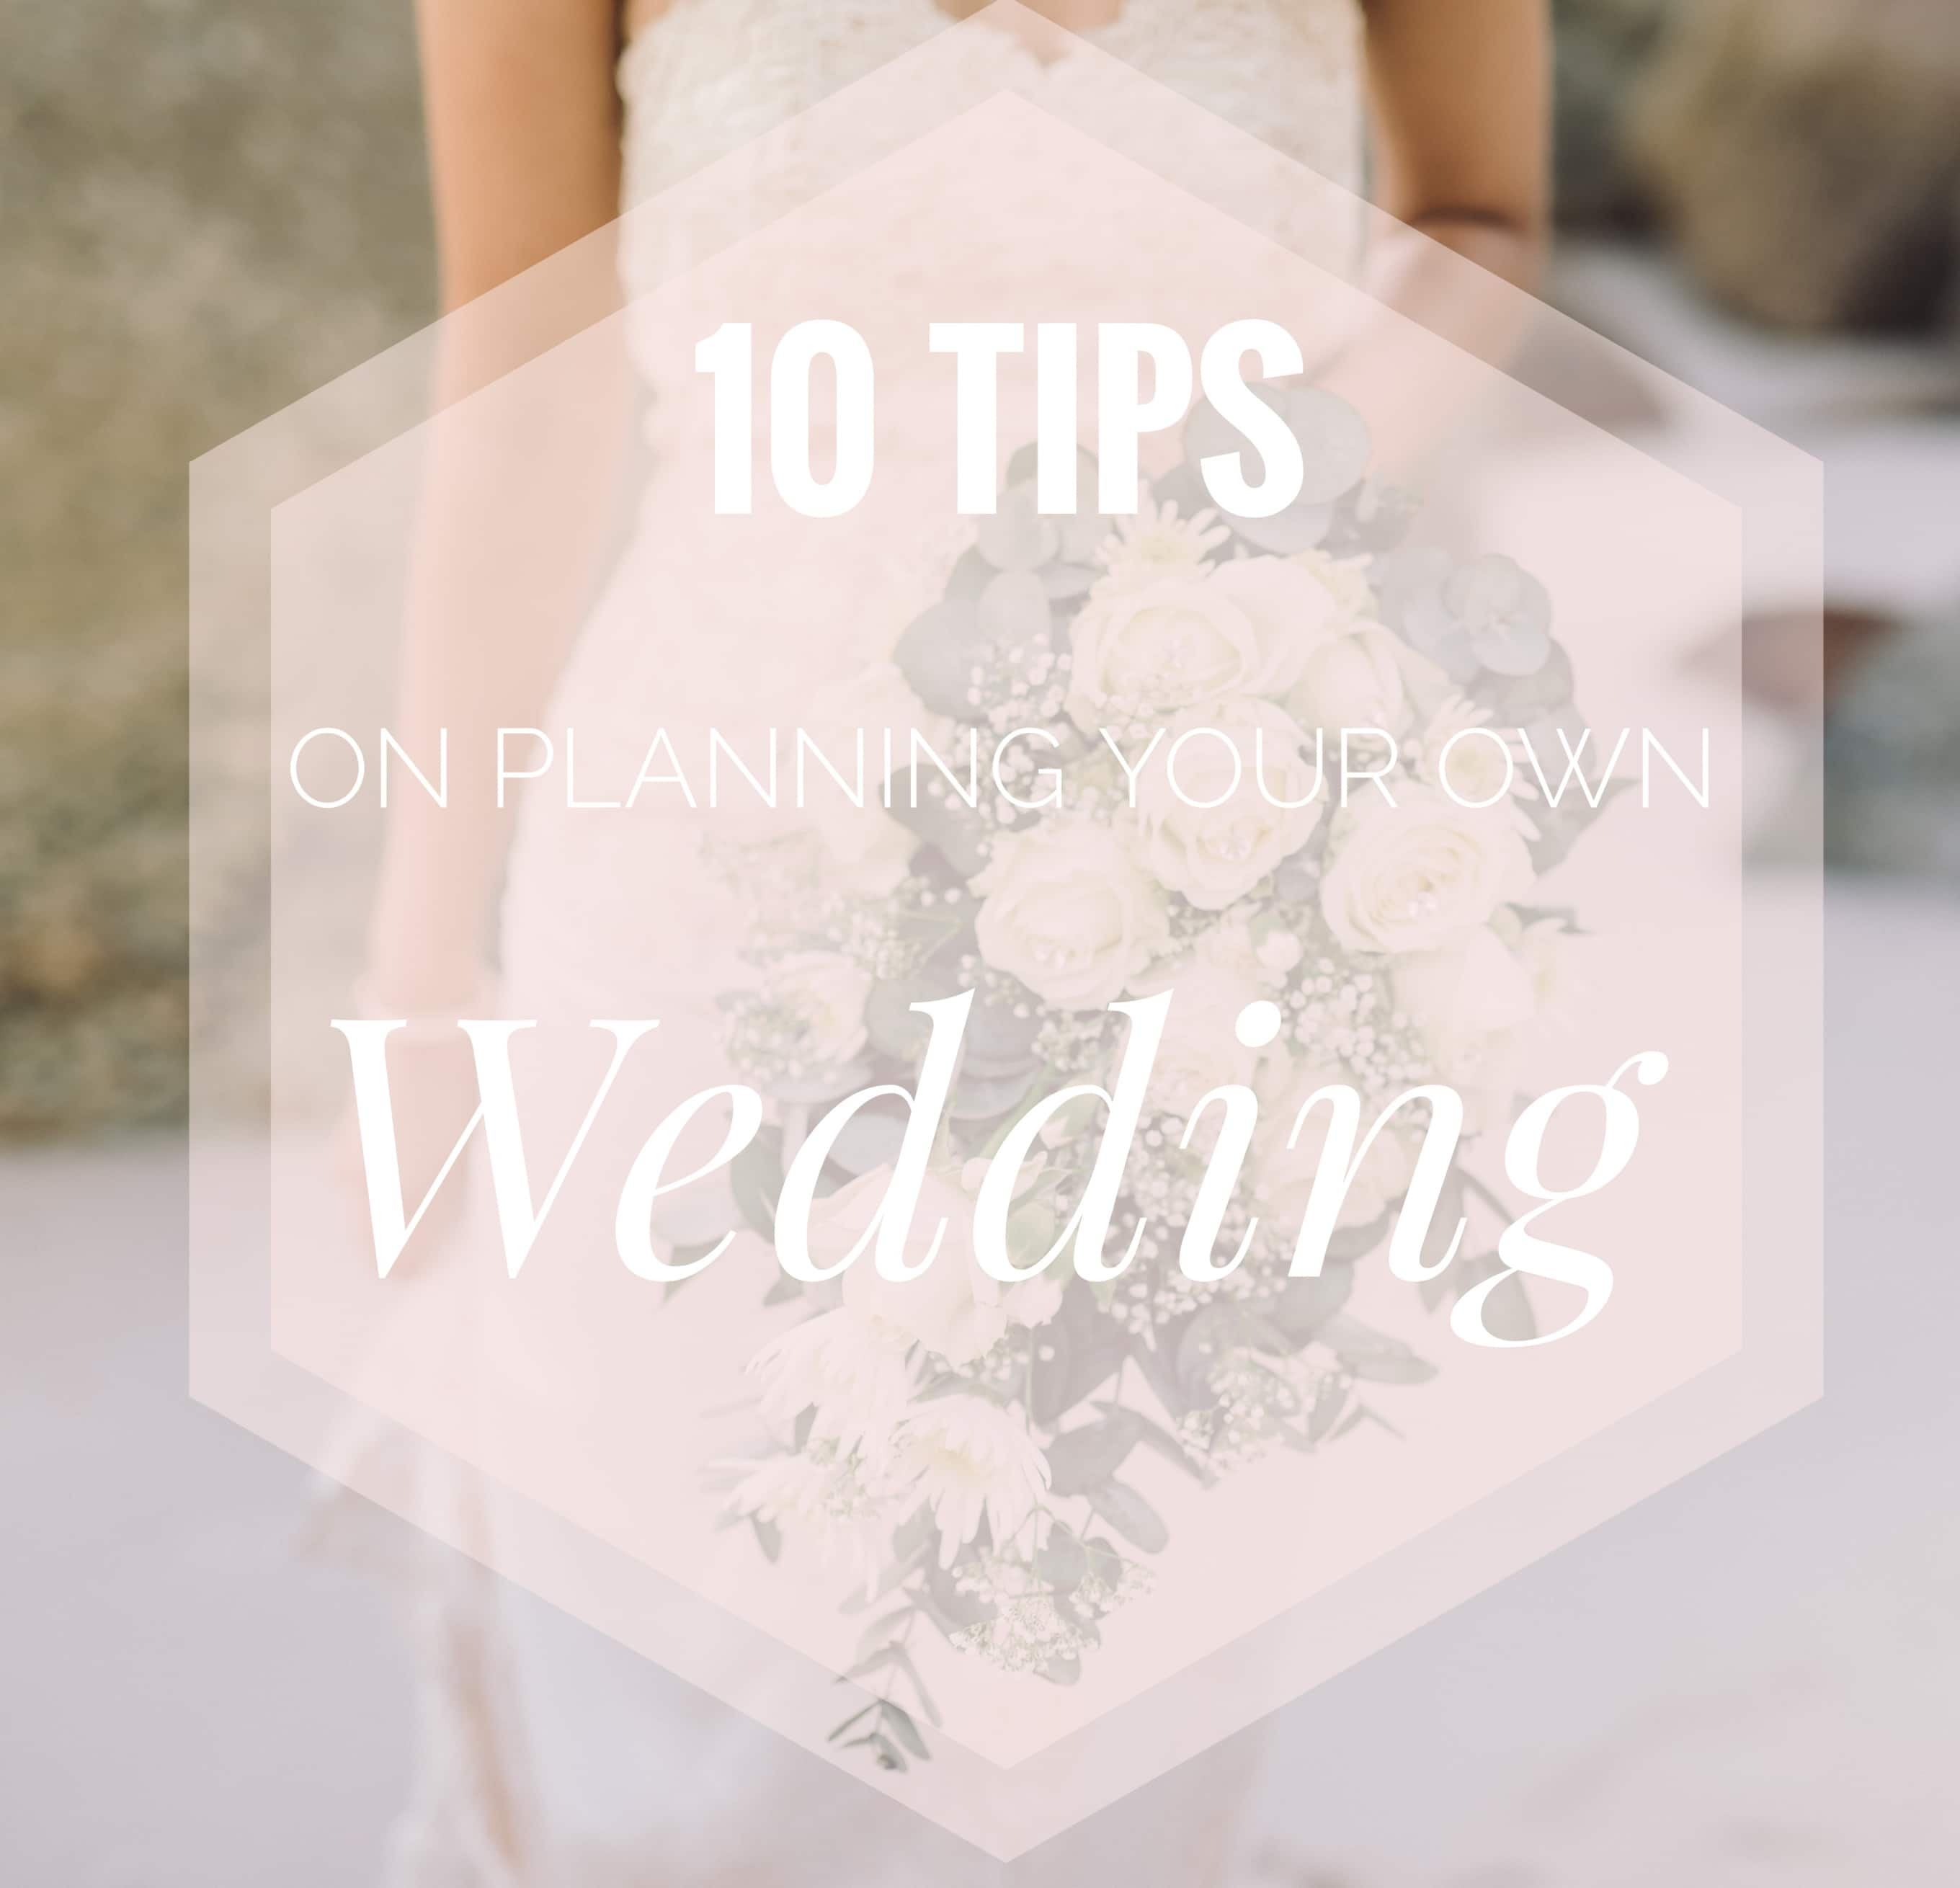 10 Tips on Planning Your Own Wedding